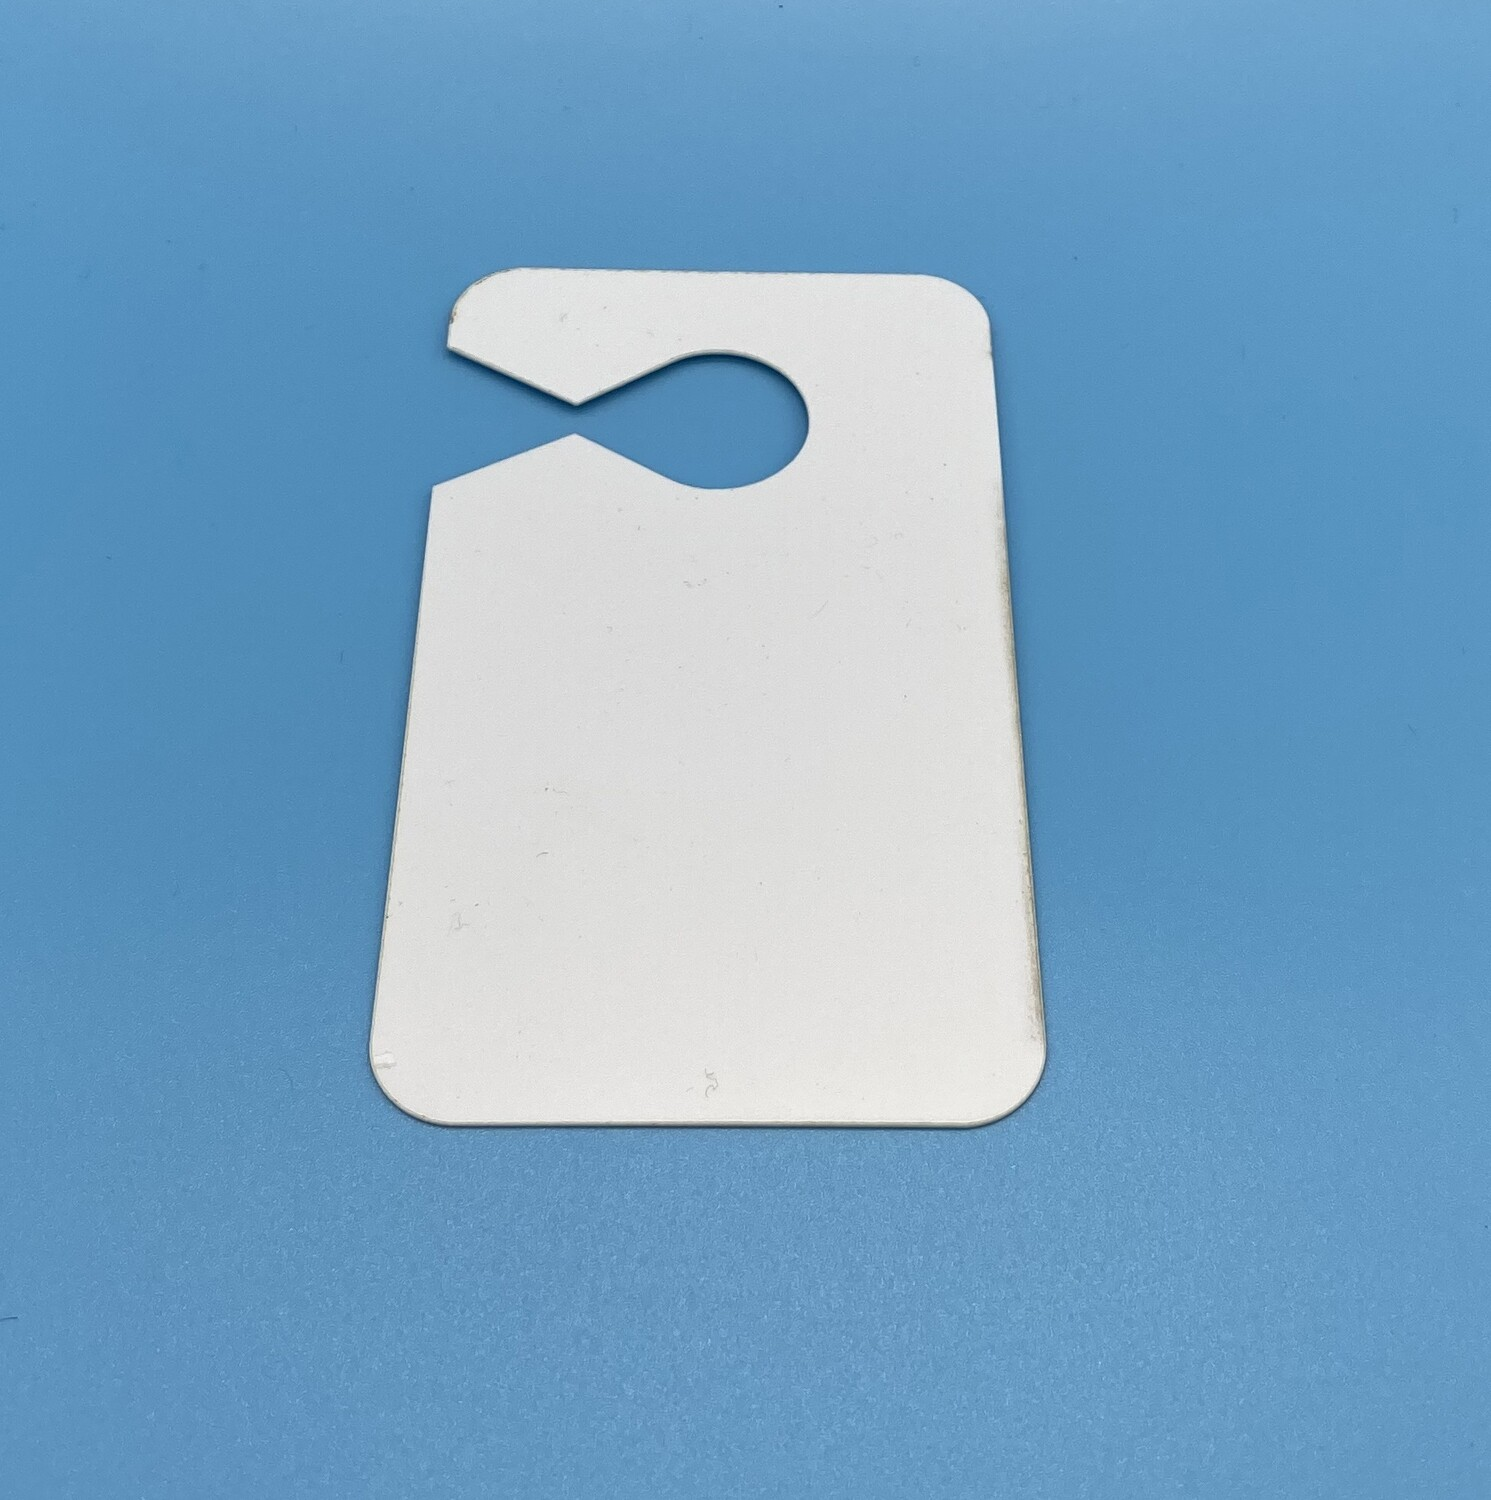 """Sublimation Blank Plastic Car Hanger Tag - 2.75"""" x 4.75"""" - 1-sided"""